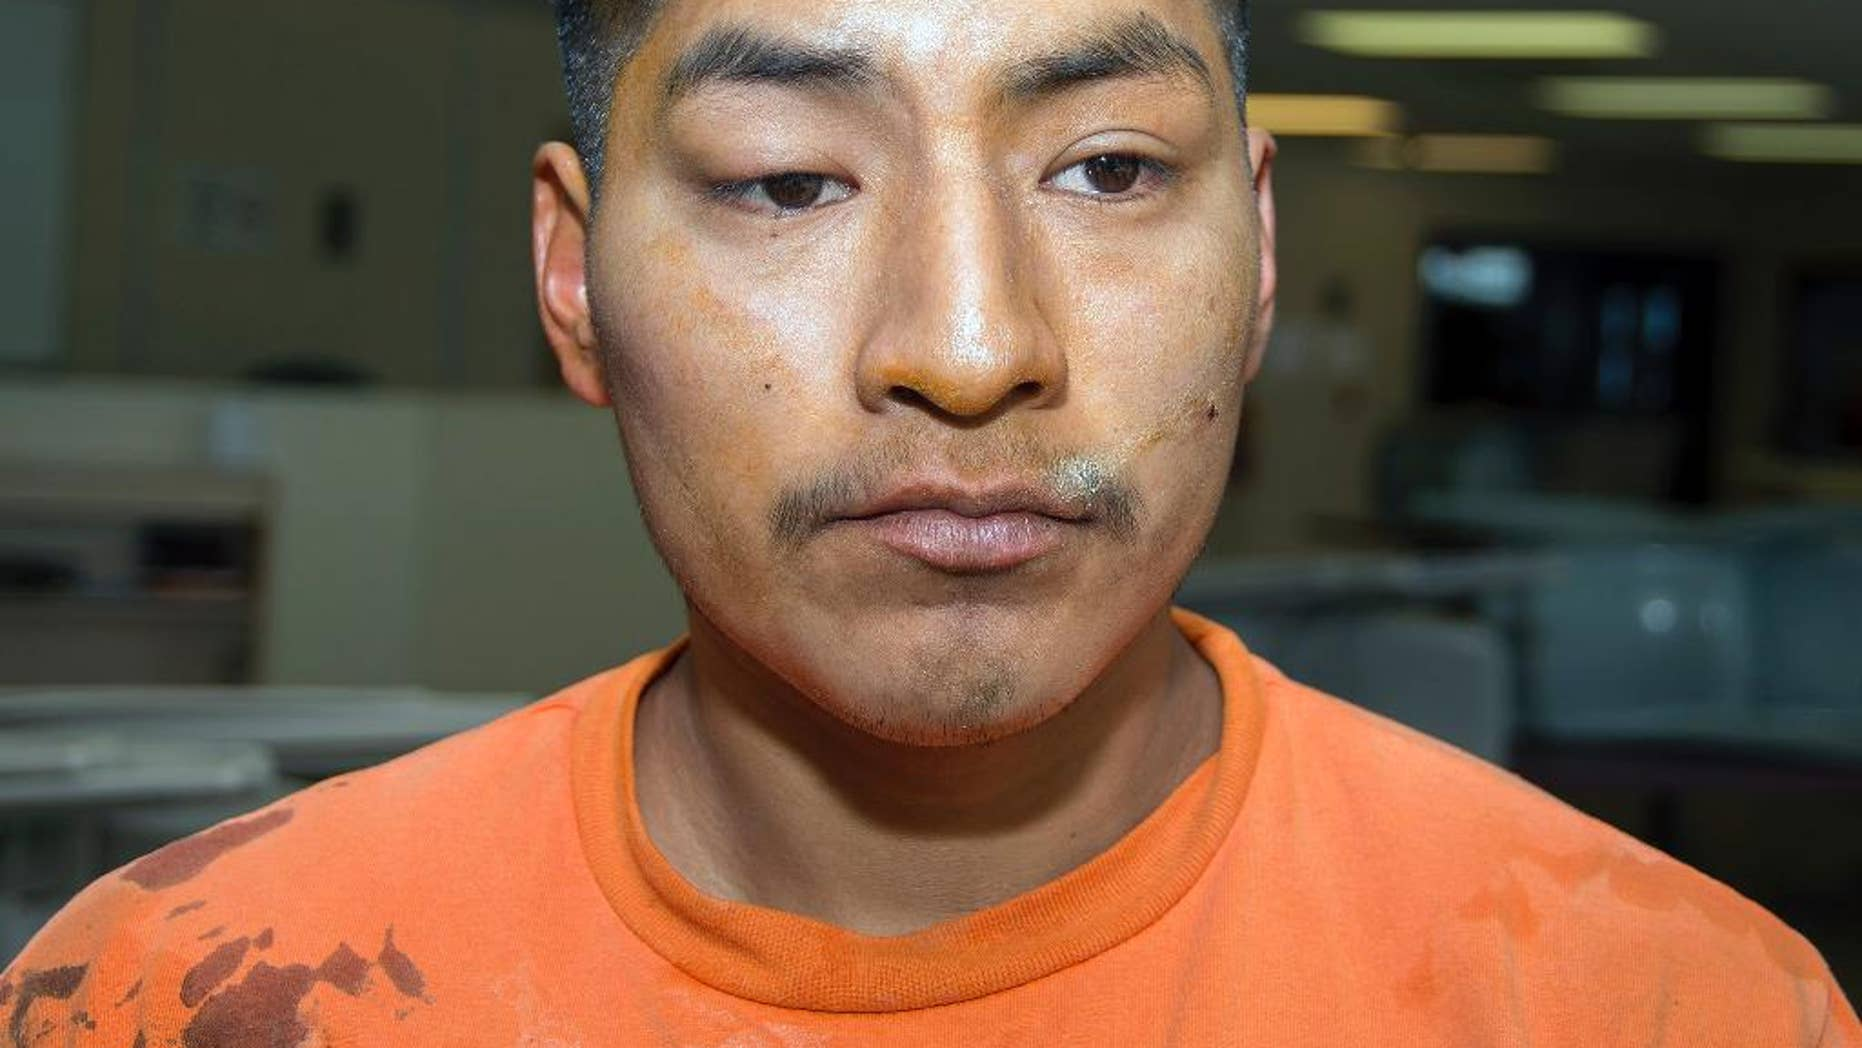 FILE - This Jan. 30, 2014 photo provided by the Arizona Department of Corrections shows inmate Jacob Harvey, accused of attacking a state prison teacher in Florence, Ariz. Harvey, who pleaded guilty to raping a prison teacher at the Eyman state prison, is set for sentencing Monday, Sept. 14, 2015.  (Arizona Department of Corrections via AP, File)